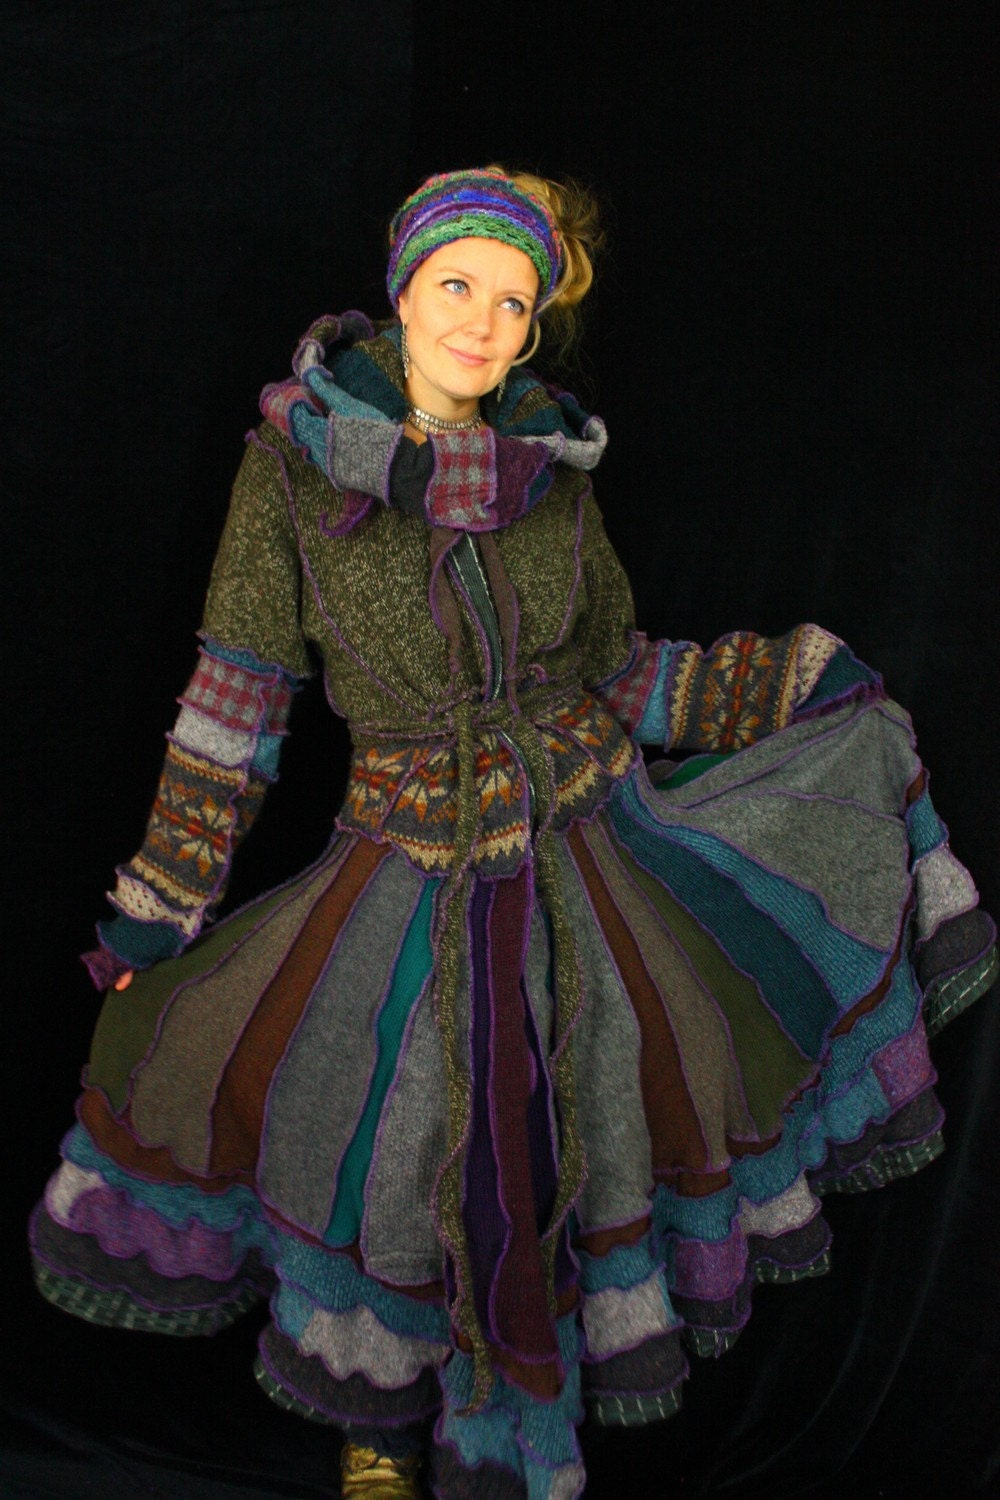 RESERVED FOR ABBY FREESPIRIT - ELF COAT - Long Recycled Sweater Coat -crazyquilt gypsy traveller festival pixie cloak -  upcycled Cadigan jumper